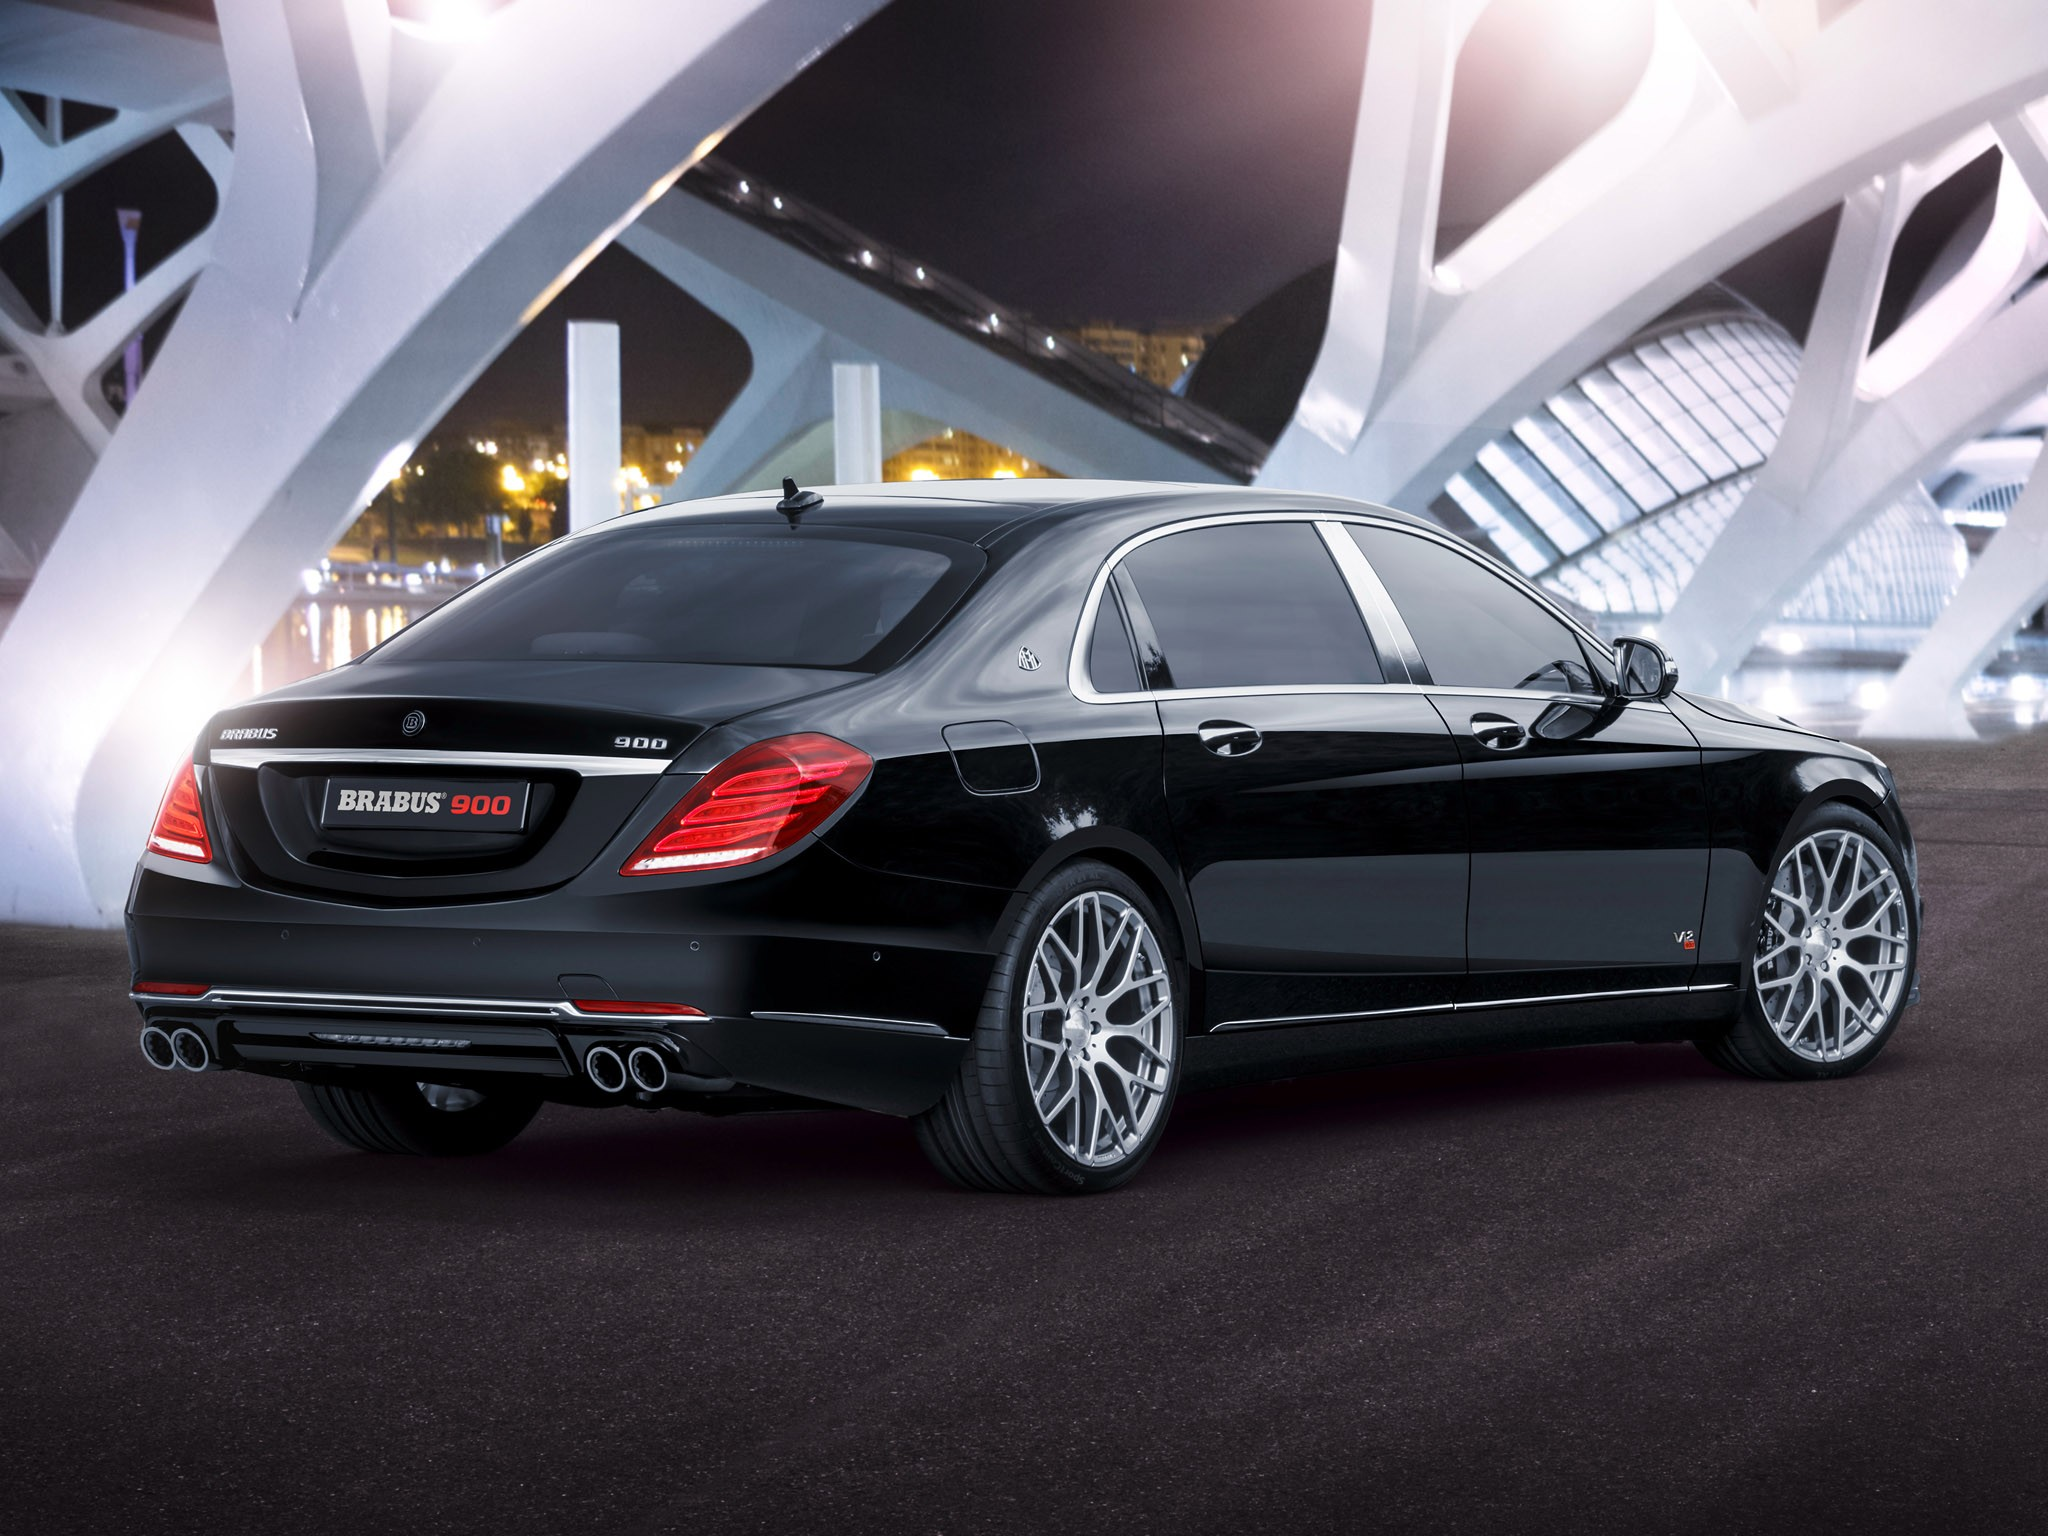 2015 Brabus - Mercedes Maybach Rocket 900 6.3 V12 X222